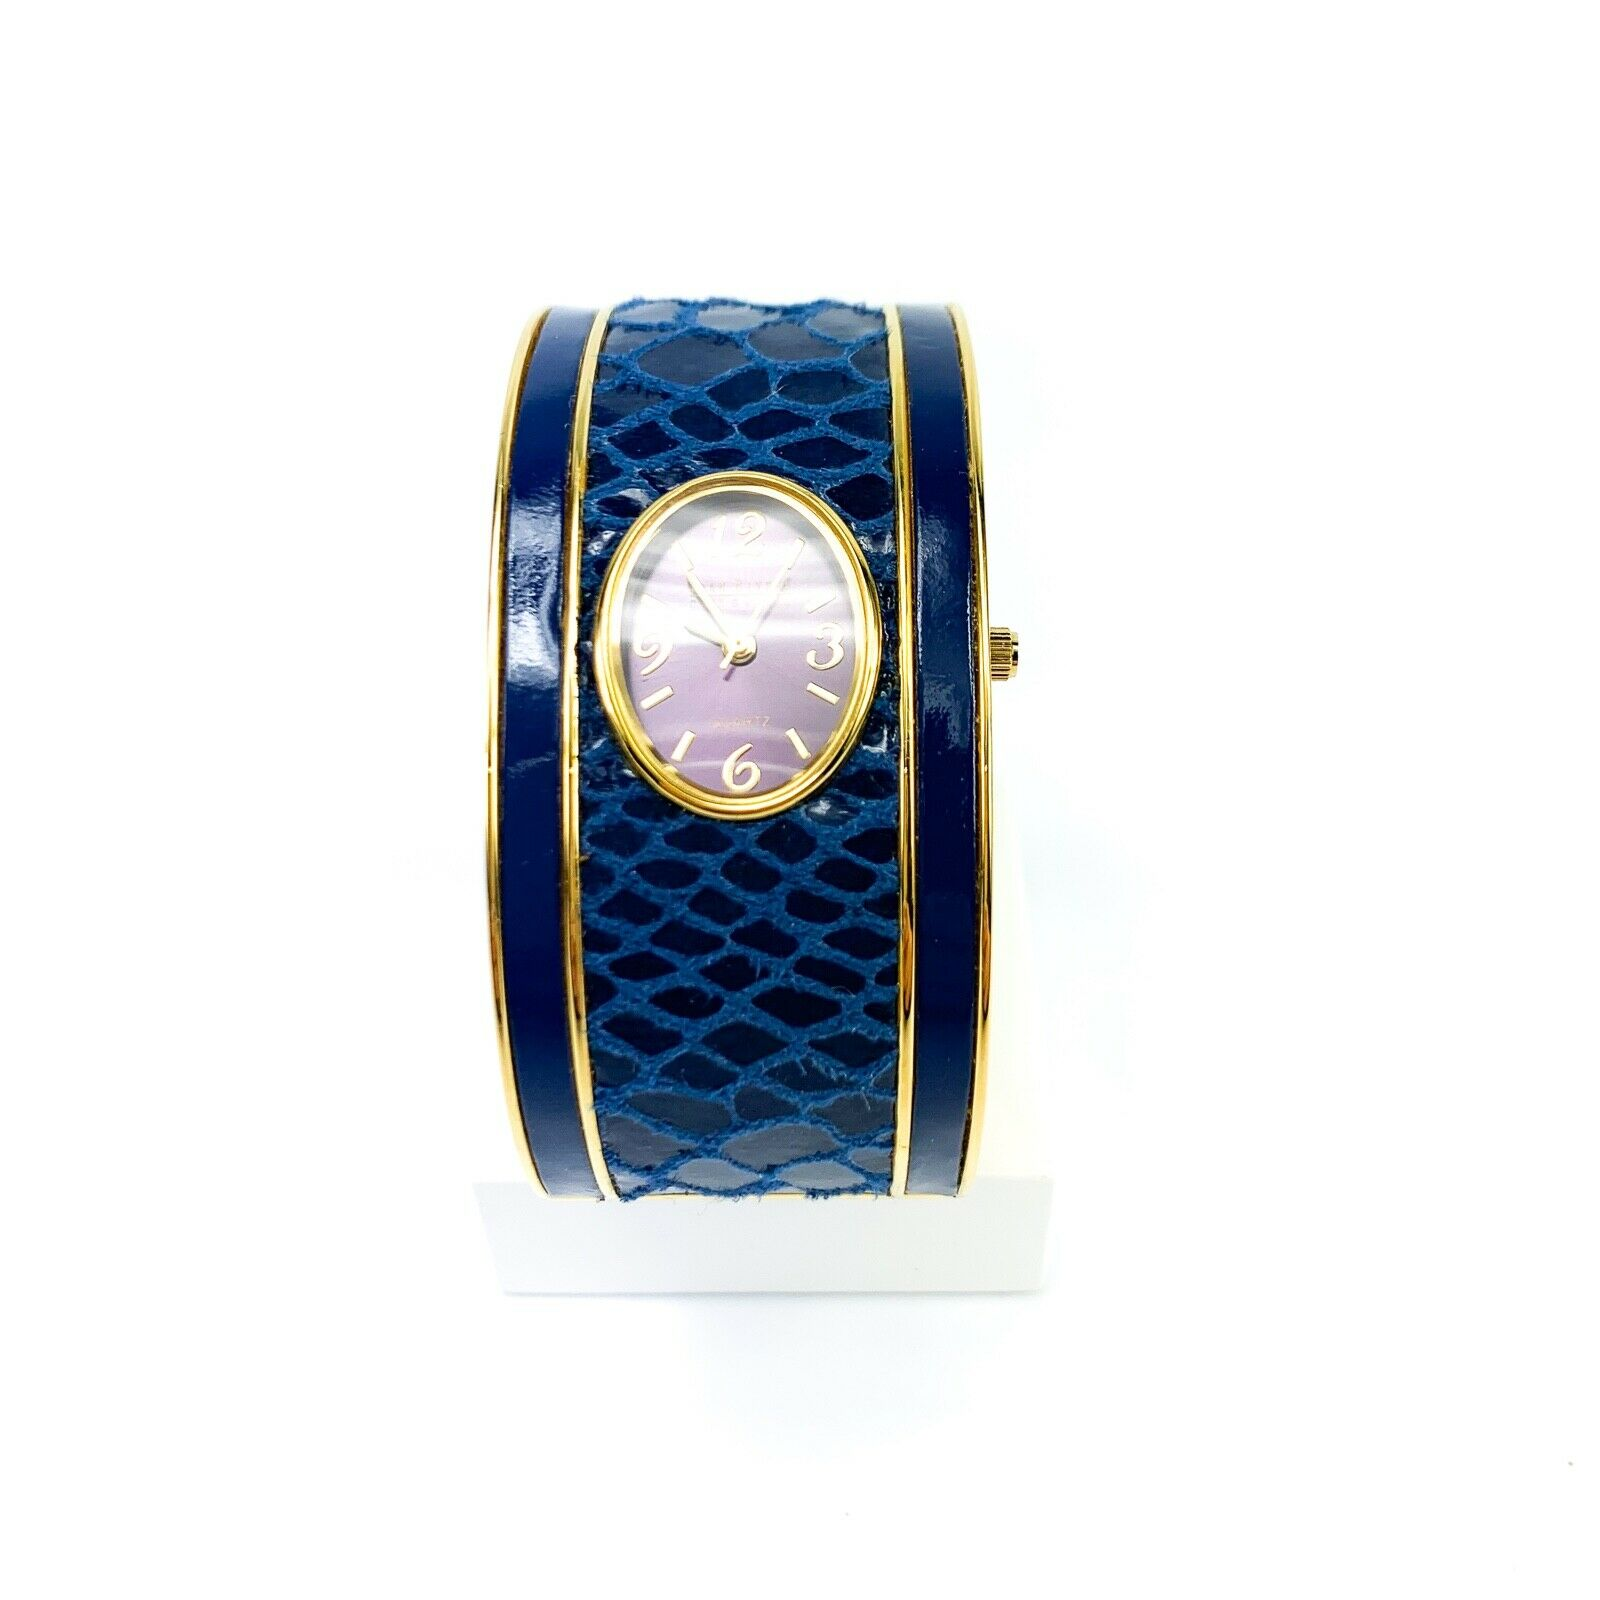 Qvc Joan Rivers Simply The Best Hinged Bangle Watch For Sale Online Ebay